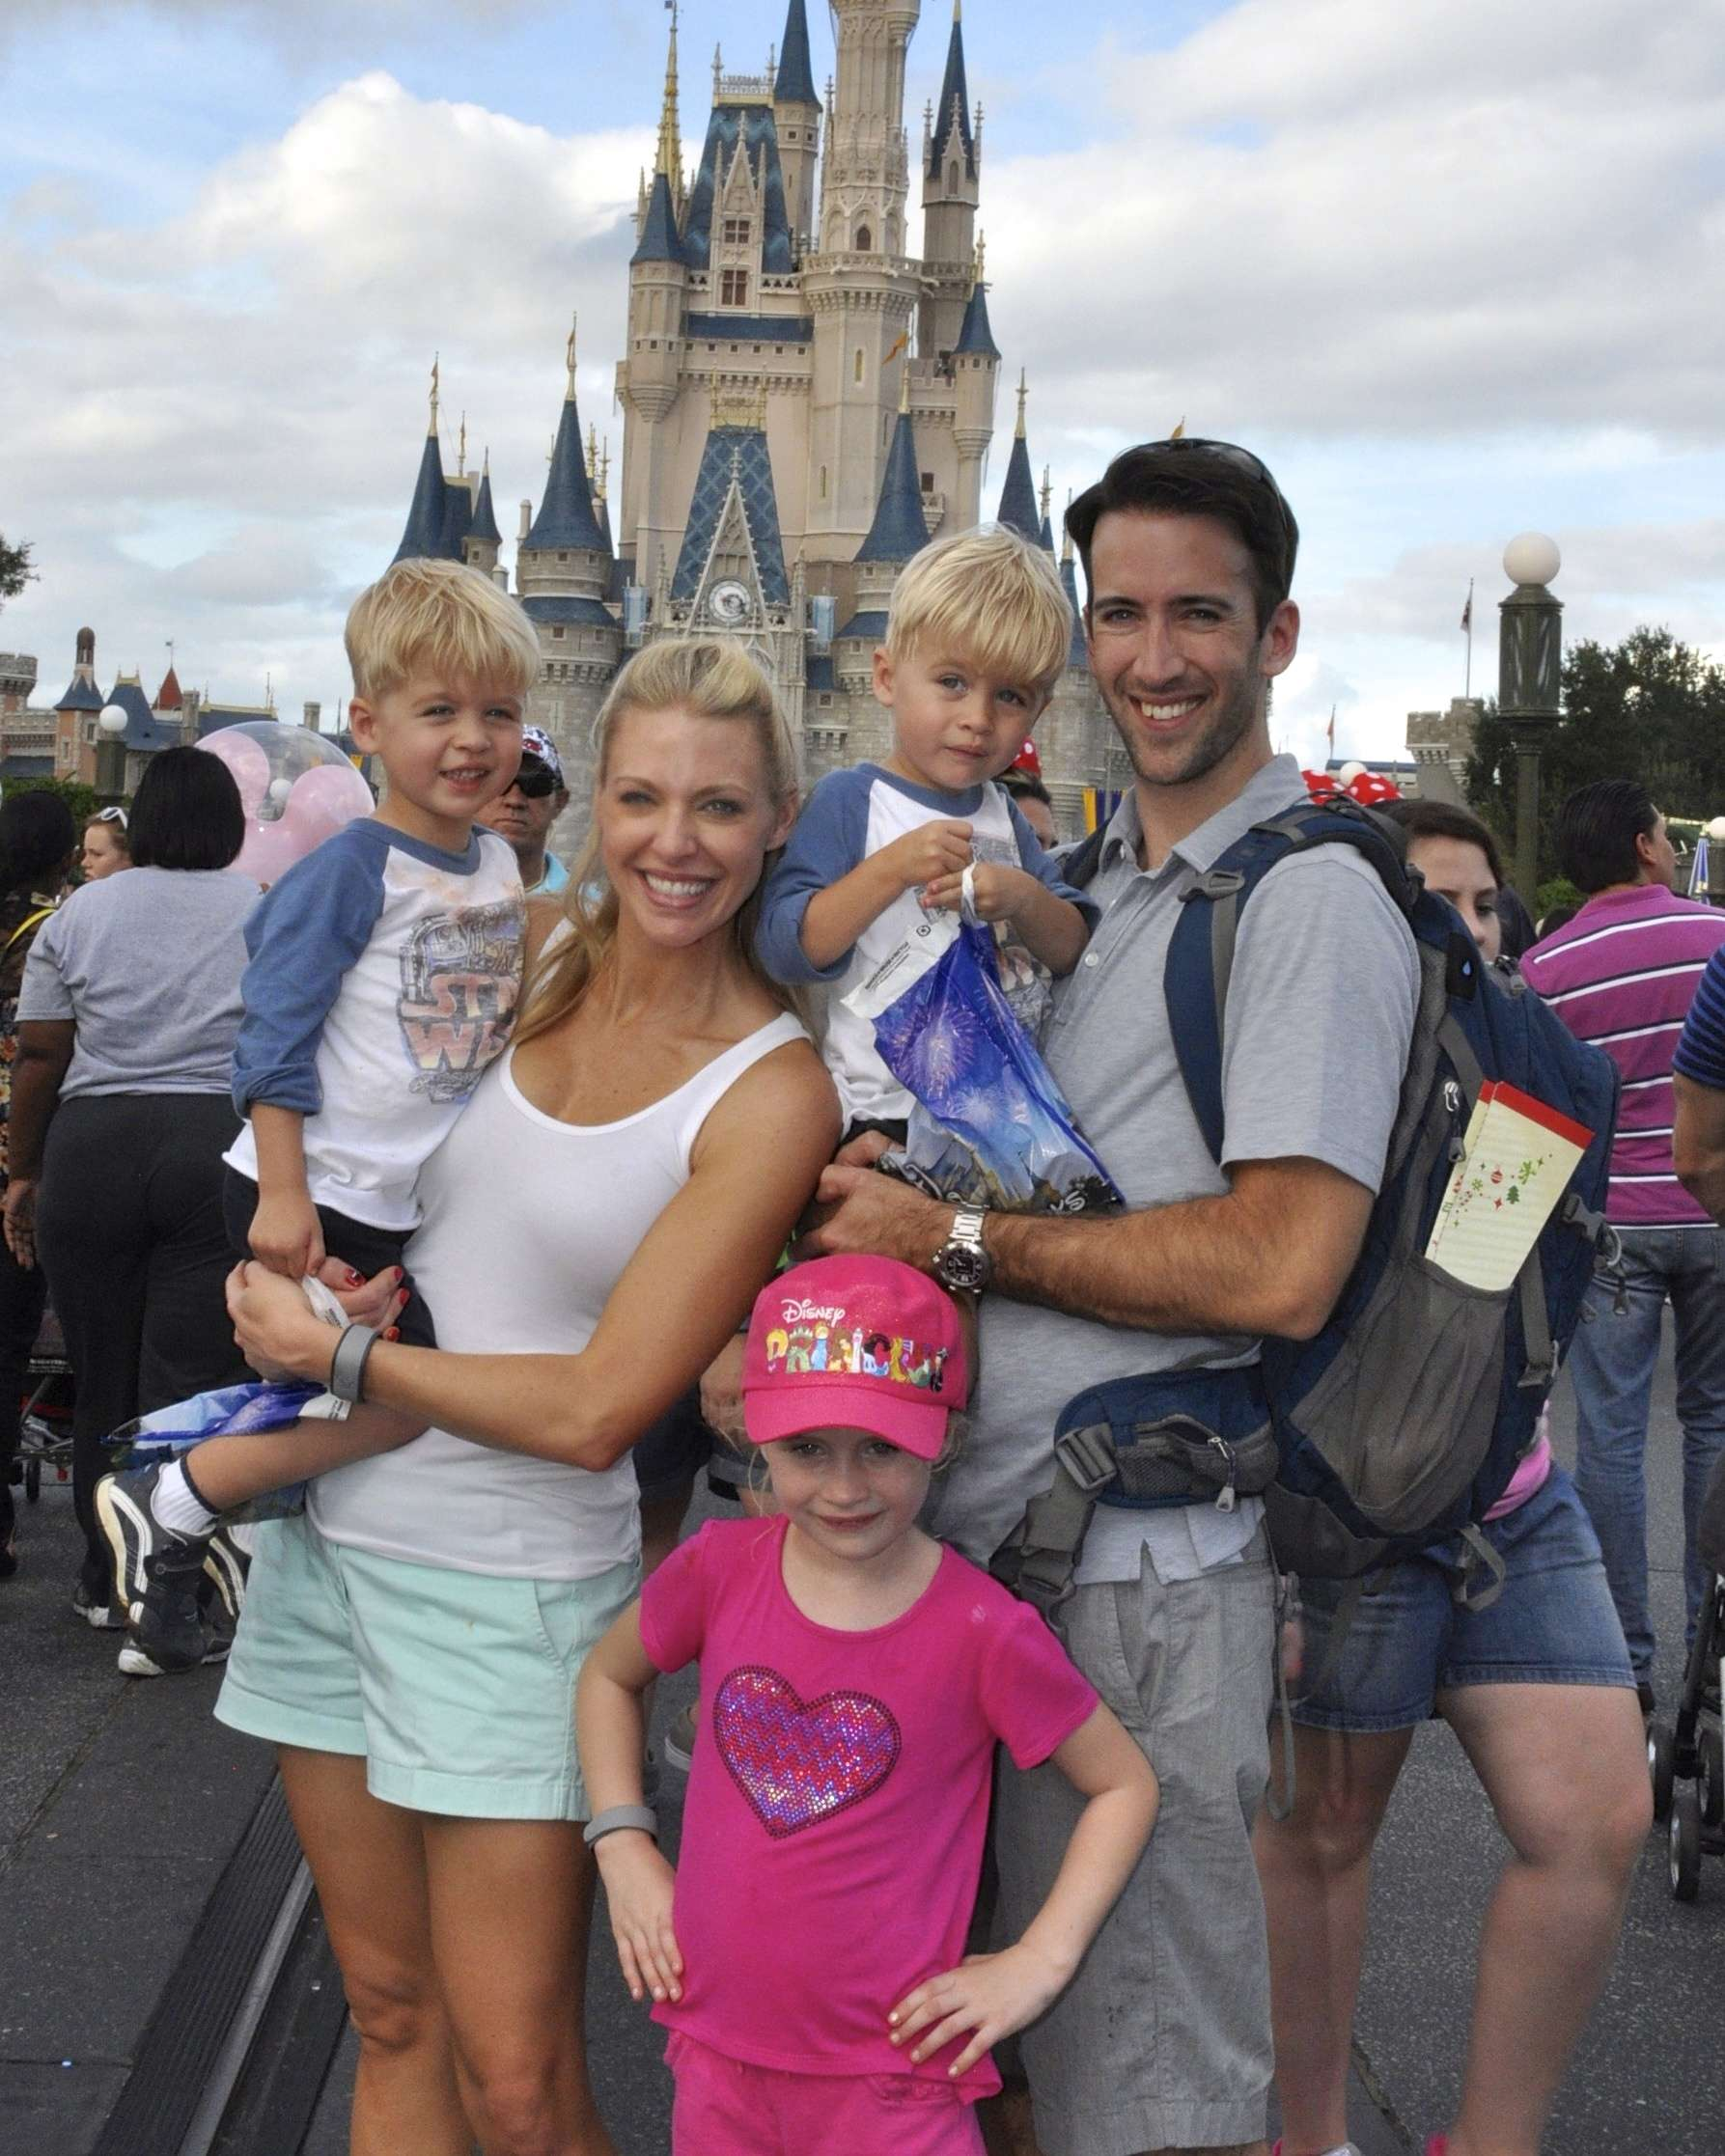 How to visit Disney World with kids. Tip pro tips from a former Disney employee on how to have fun at Disney World!